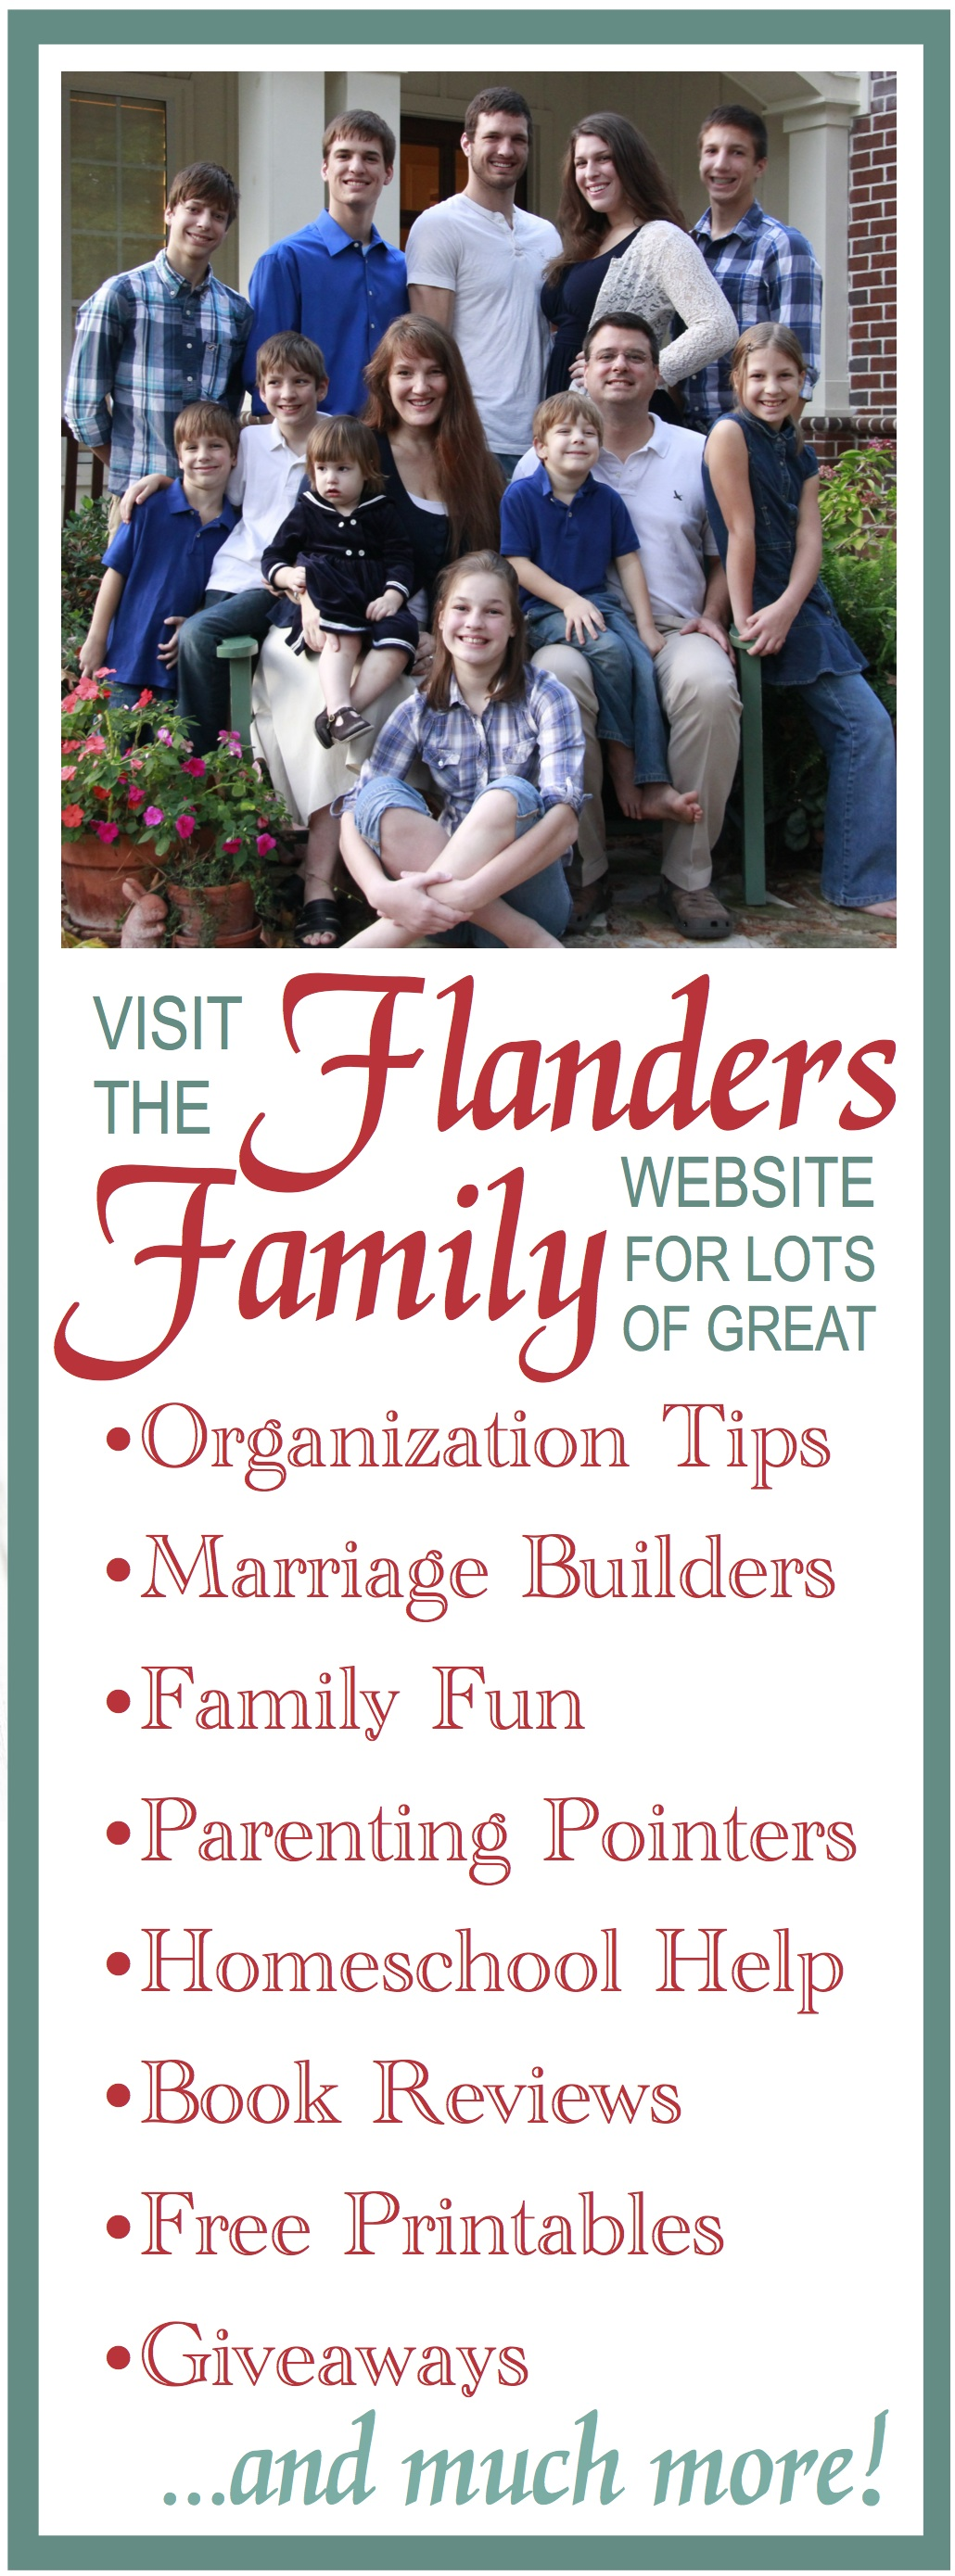 Visit the Flanders Family Website